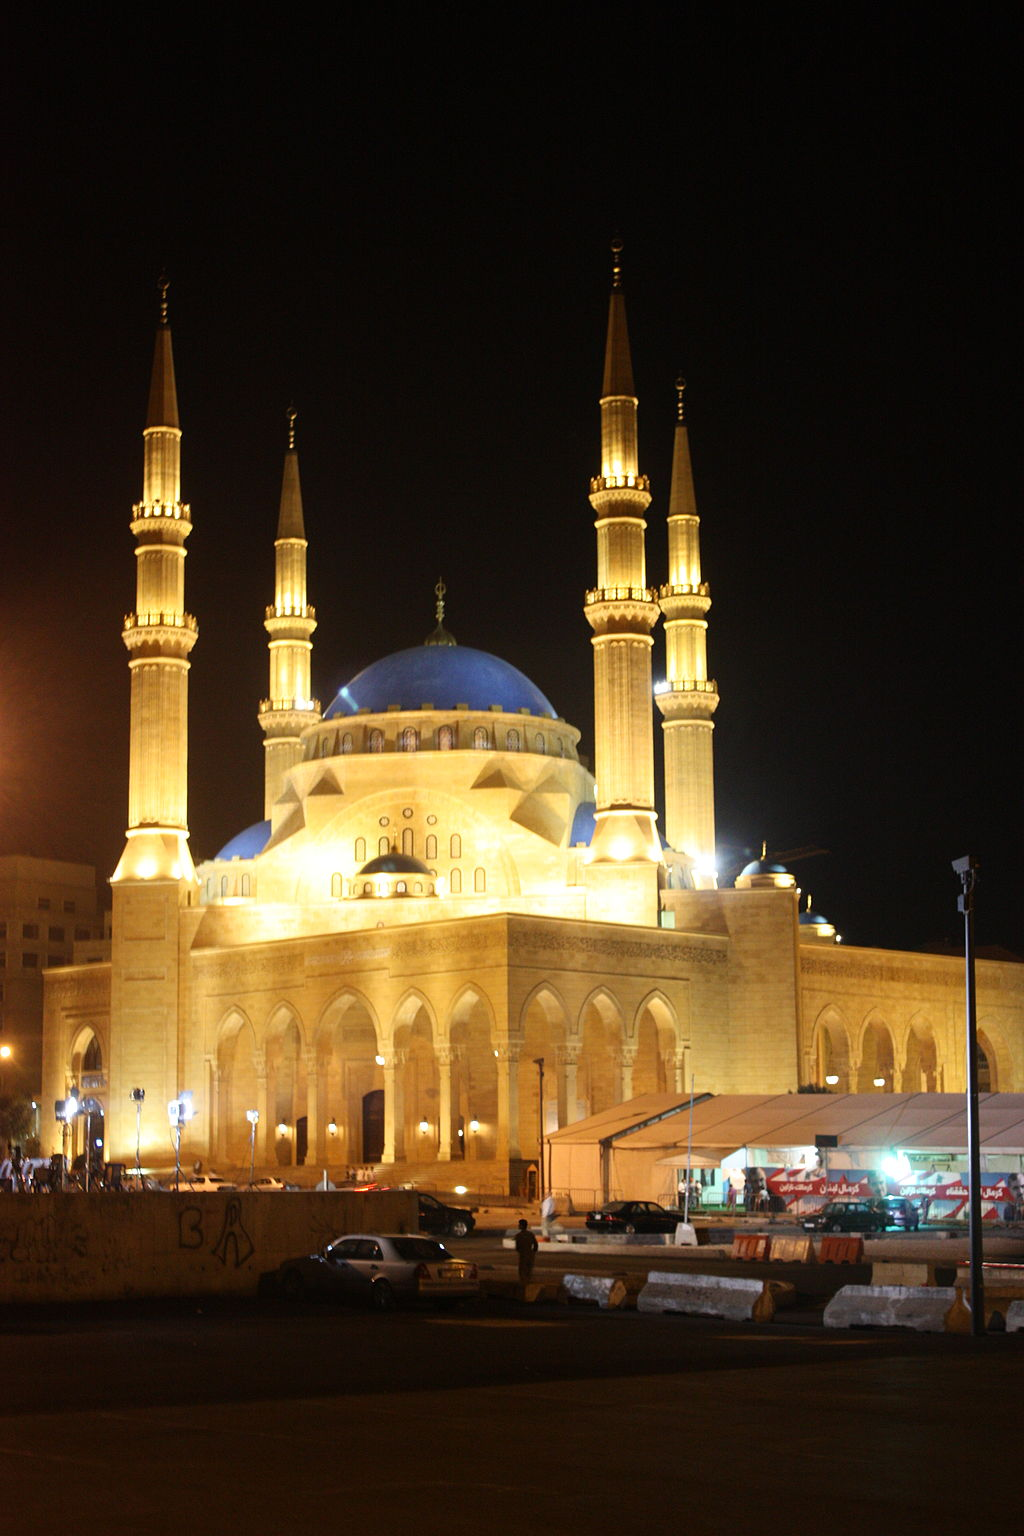 Al Amin Mosque, Beirut  (Picture by Arian Zwegers (Beirut, Mohammed al-Amin Mosque) [CC BY 2.0 (http://creativecommons.org/licenses/by/2.0)], via Wikimedia Commons)